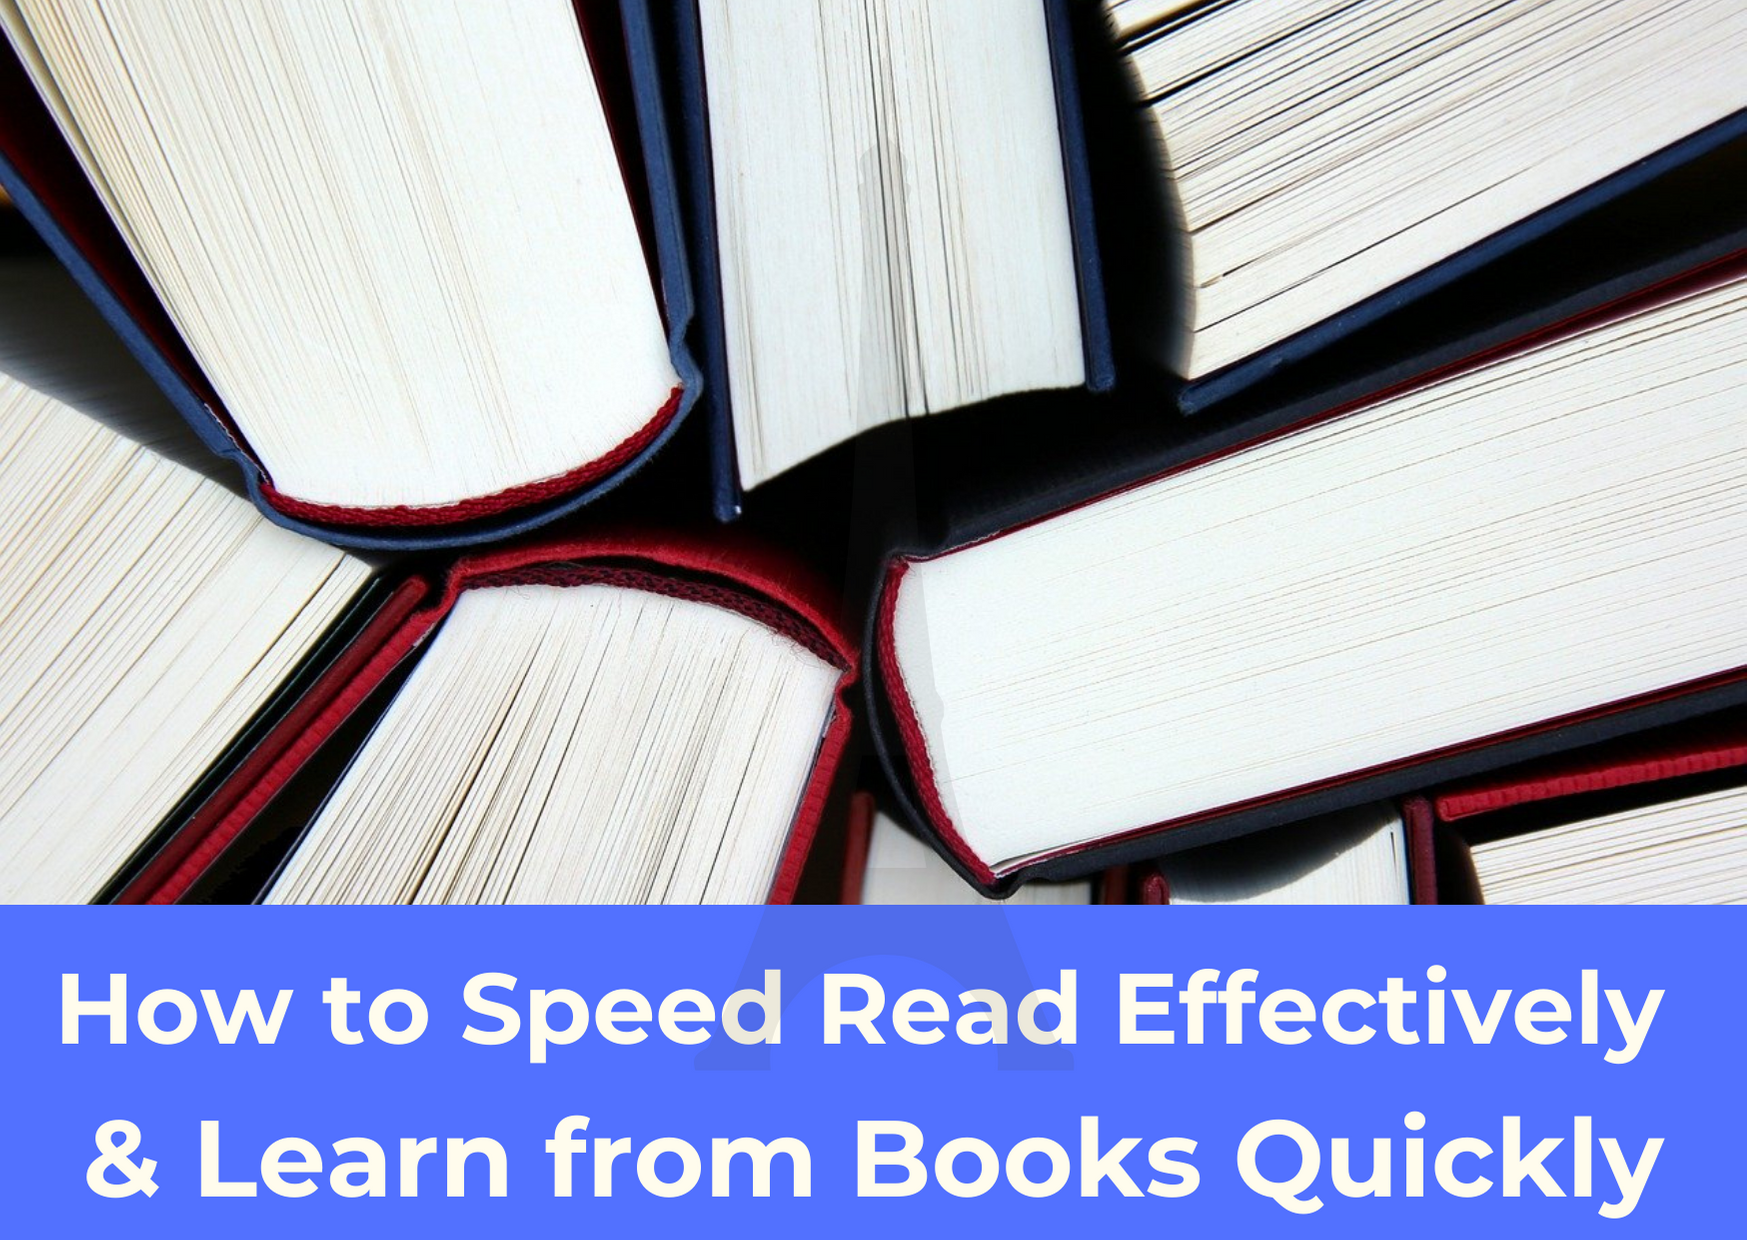 How to Speed Read Effectively & Learn from Books Quickly